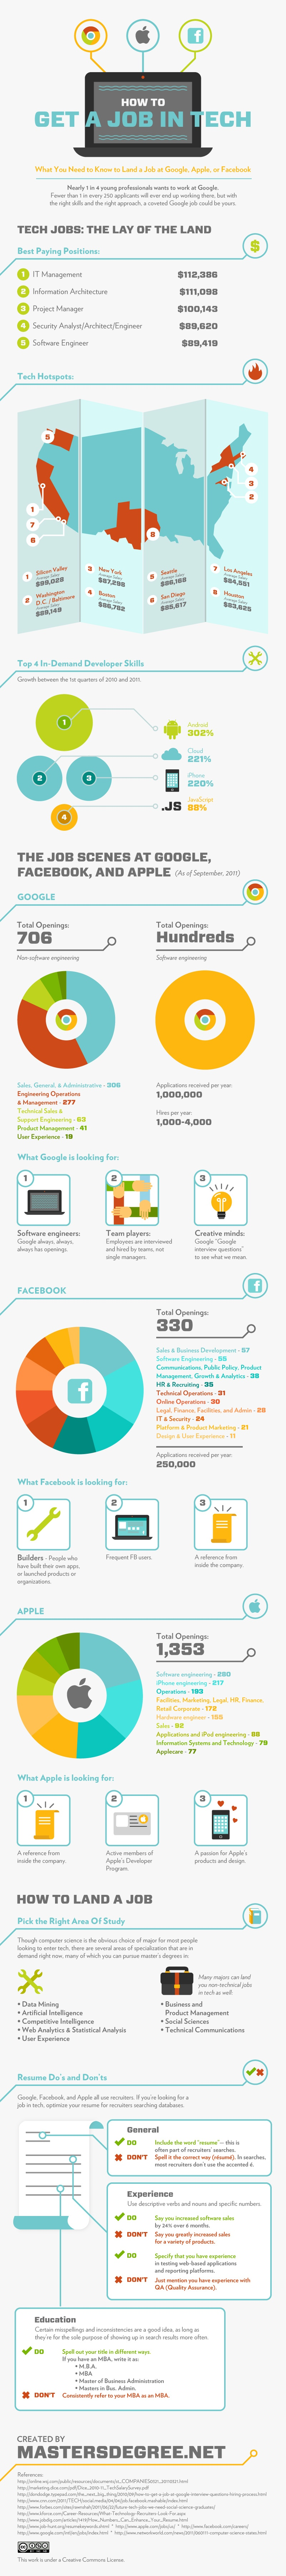 Tech Jobs With Google, Apple, Facebook